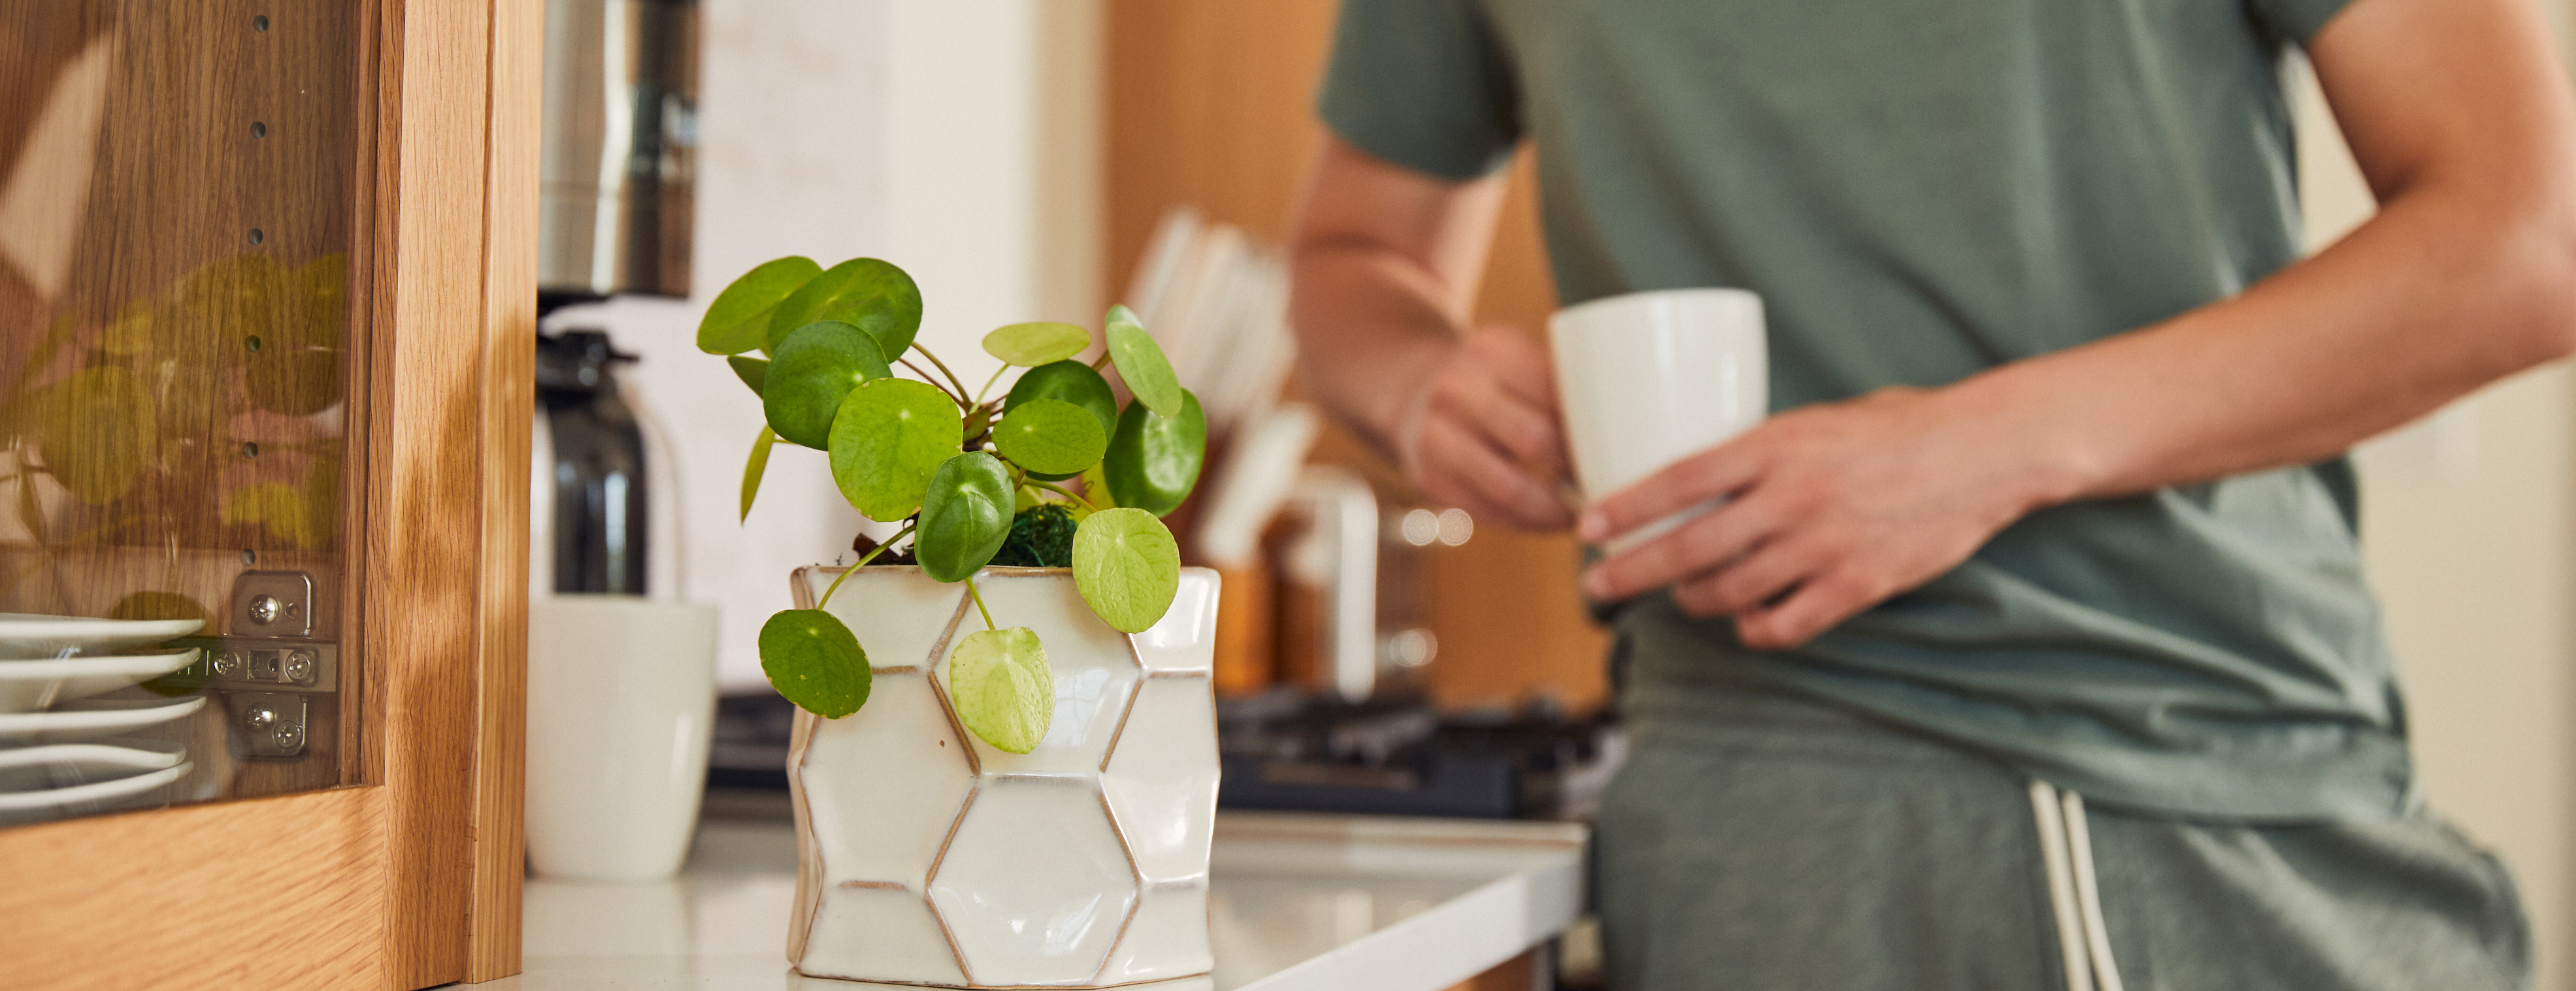 Man leaning on counter with Chinese money plant